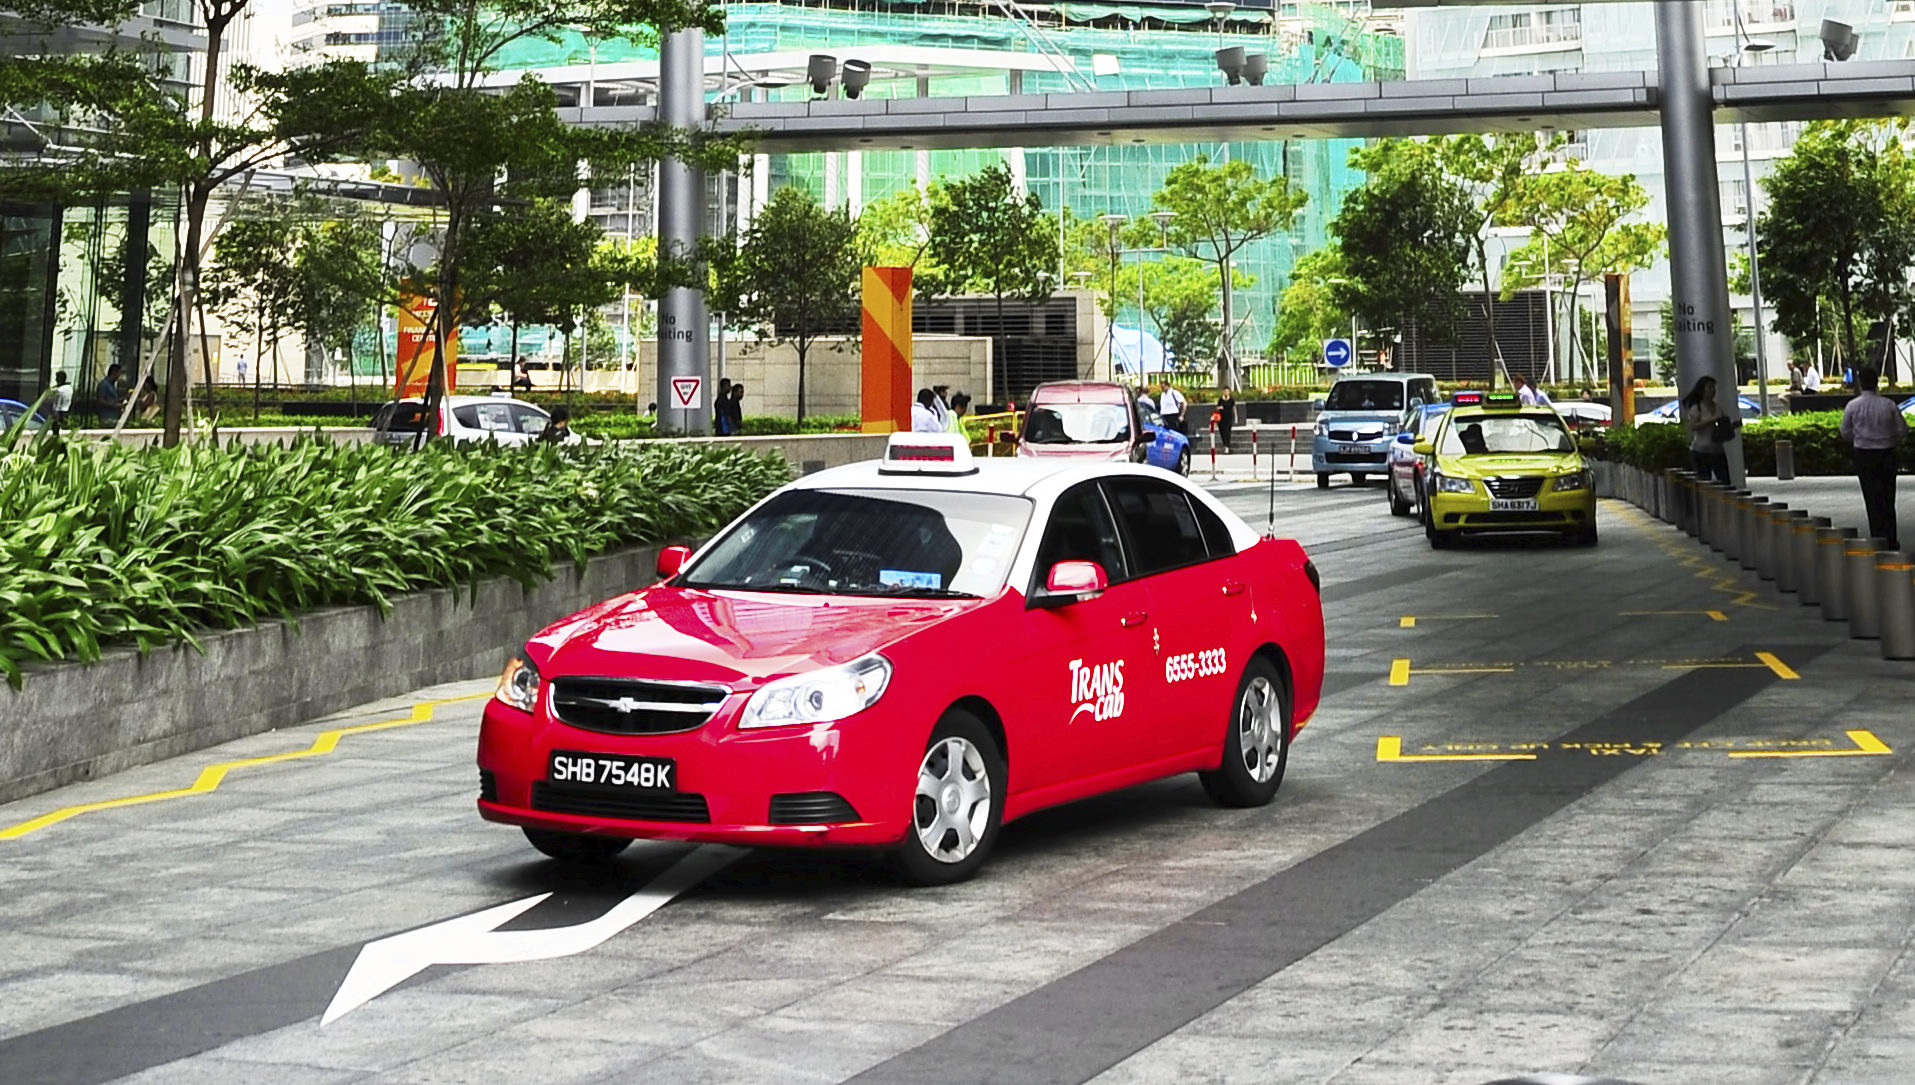 Senior Minister of State for Transport, Ng Chee Meng, seeking fair standards for Taxi and Private Hire vehicle services.